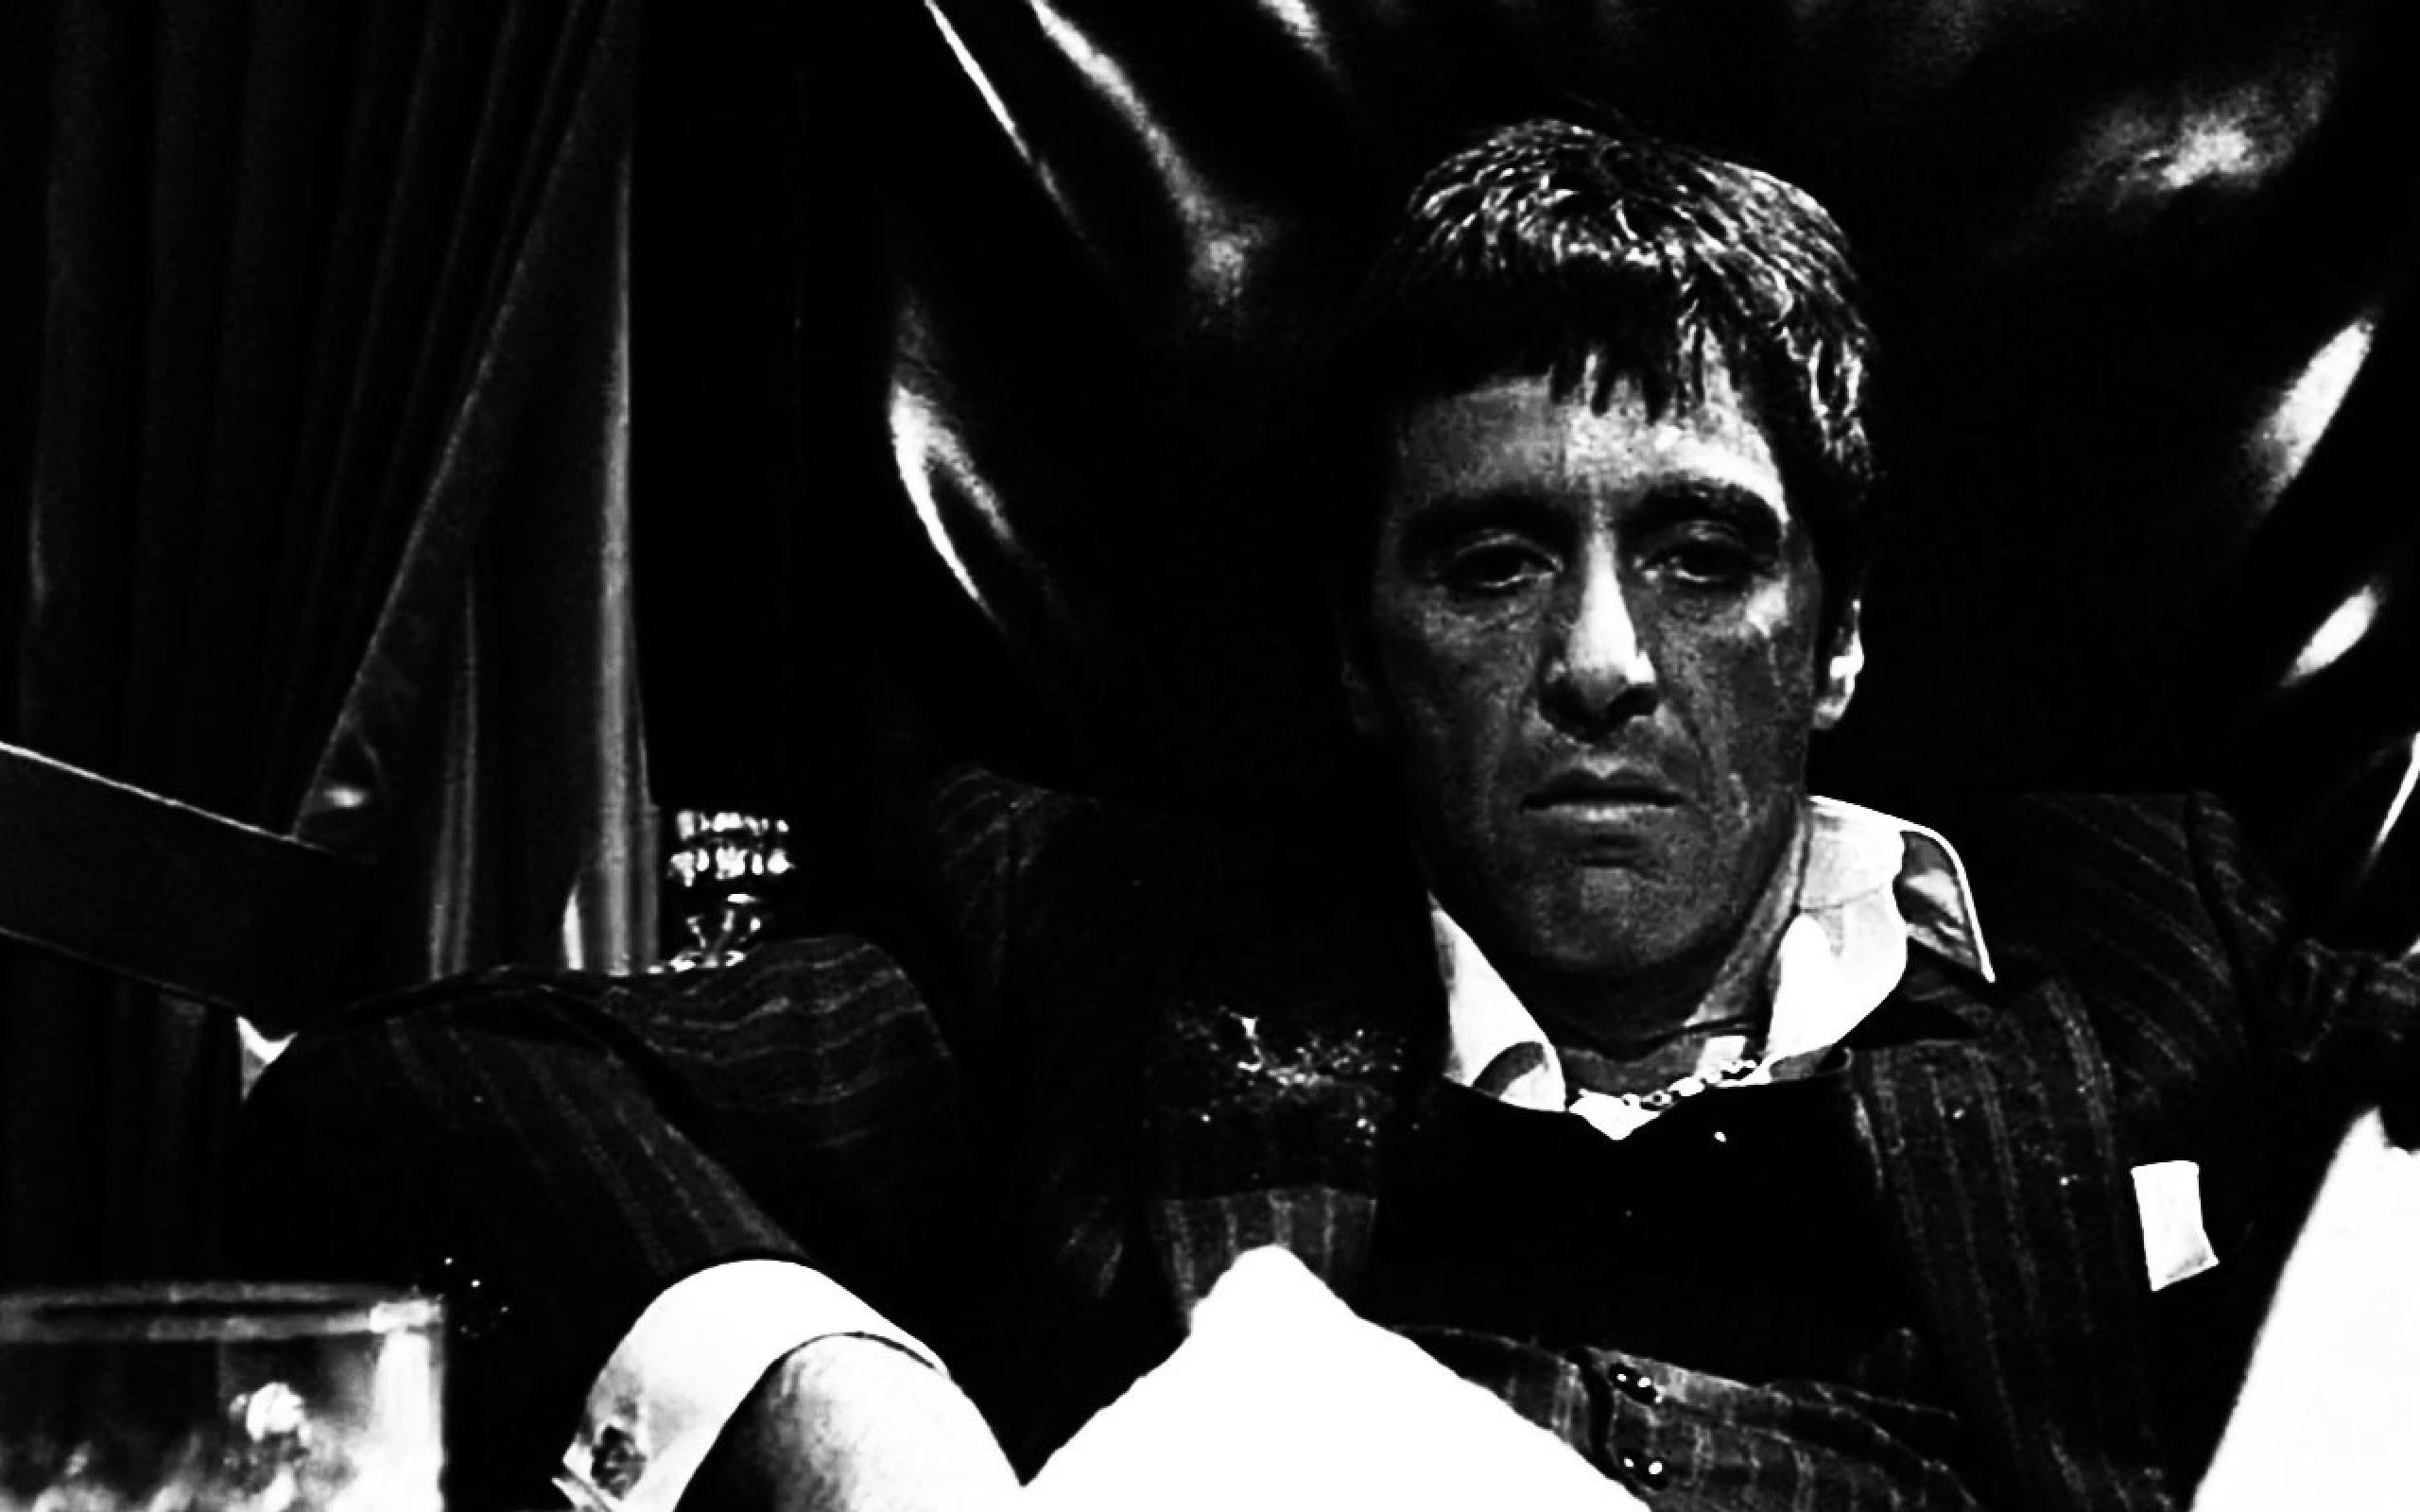 80 Scarface Hd Wallpapers on WallpaperPlay Hd wallpaper